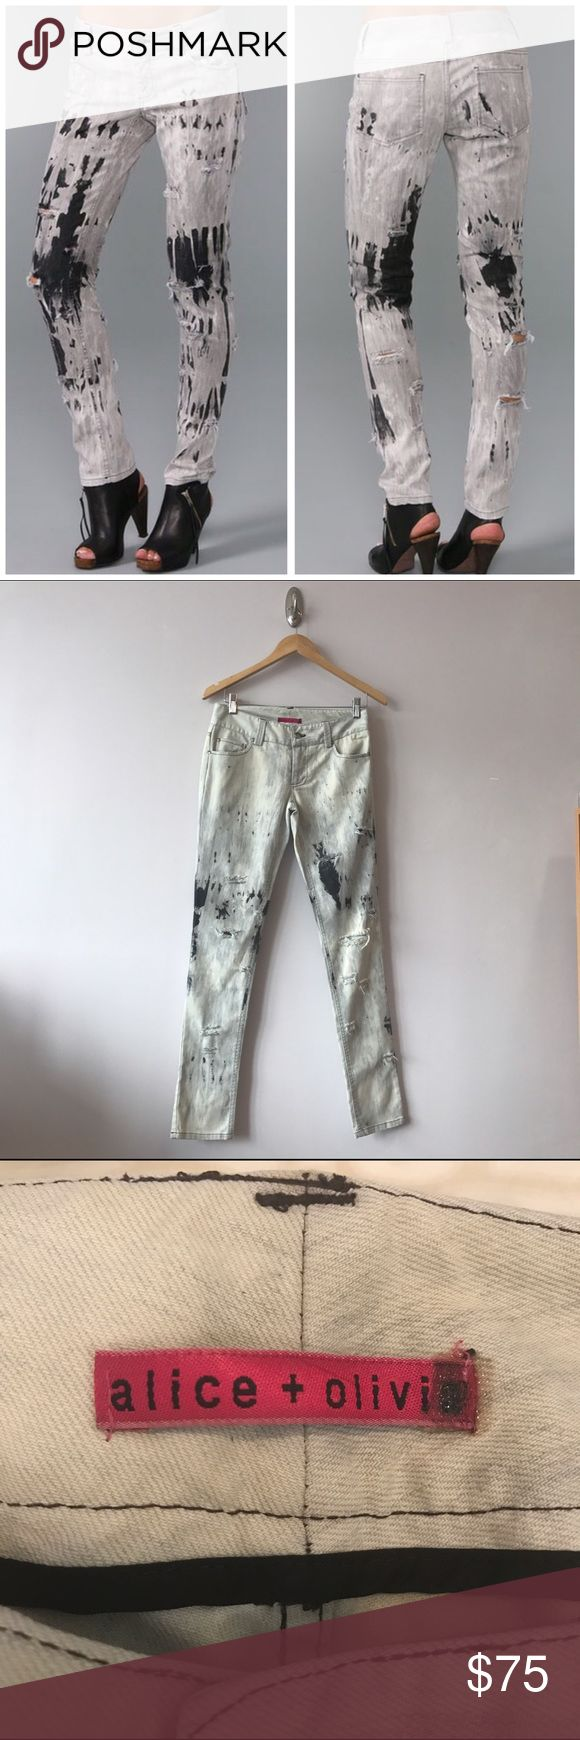 alice + olivia spatter ripped skinny jeans, size 0 alice + olivia bleached skinny jeans in lightweight denim, size 0. Like new - never worn! 5-pocket styling, a single-button closure, shredded holes at front & back w/ worn in look- edgy chic!😍 Only fault- plastic tag (w/ the number size that's small/placed to the right over the alice + olivia pink branded label) I think while in storage/closet? was folded with pressure on top and maybe got heated enough to melt I think? Strange I know lol…